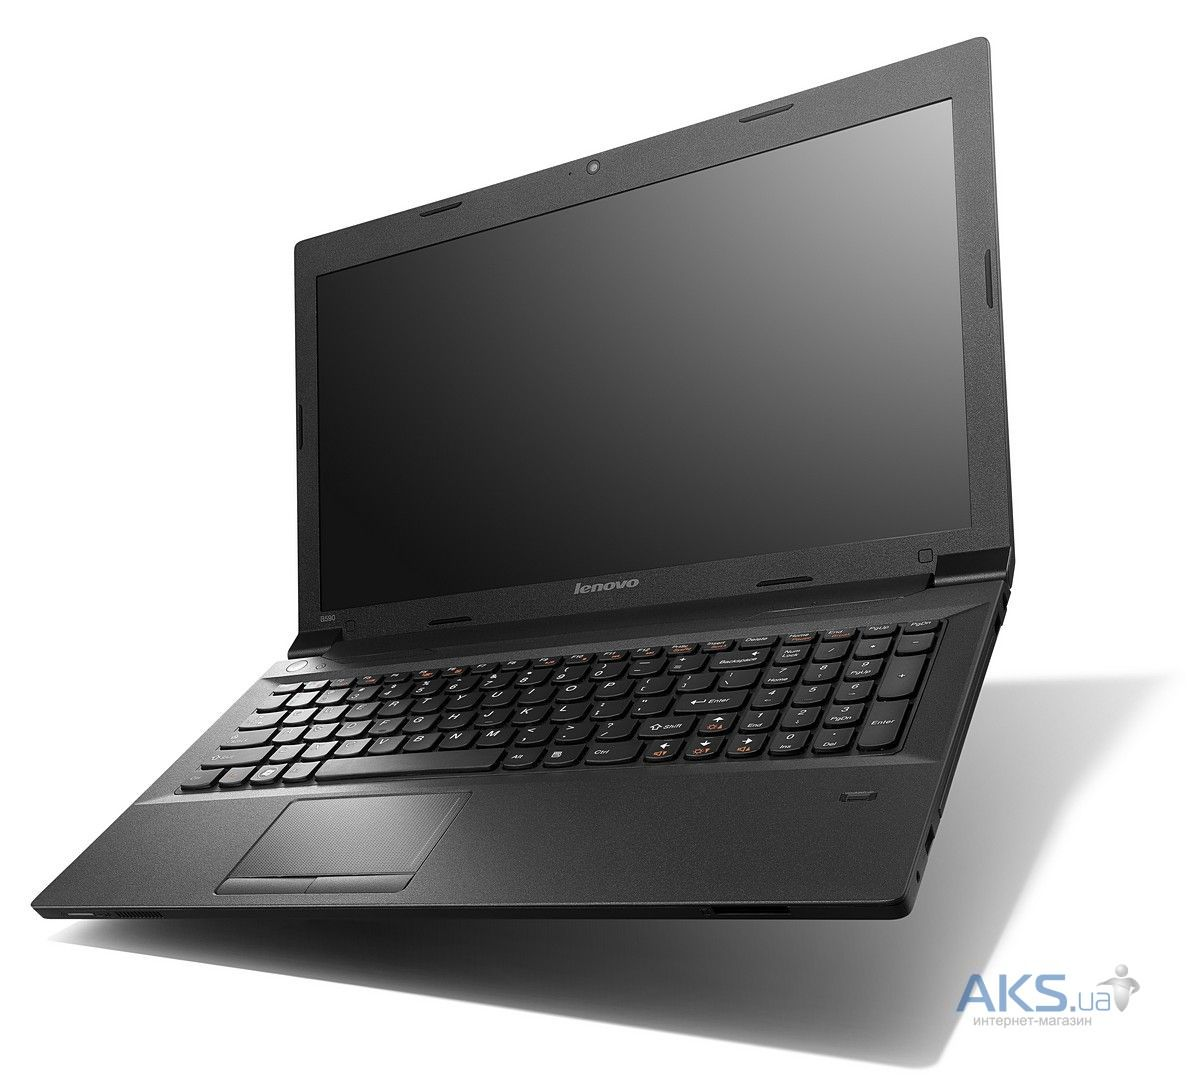 Ноутбук Lenovo IdeaPad B590 (59-392973) Black